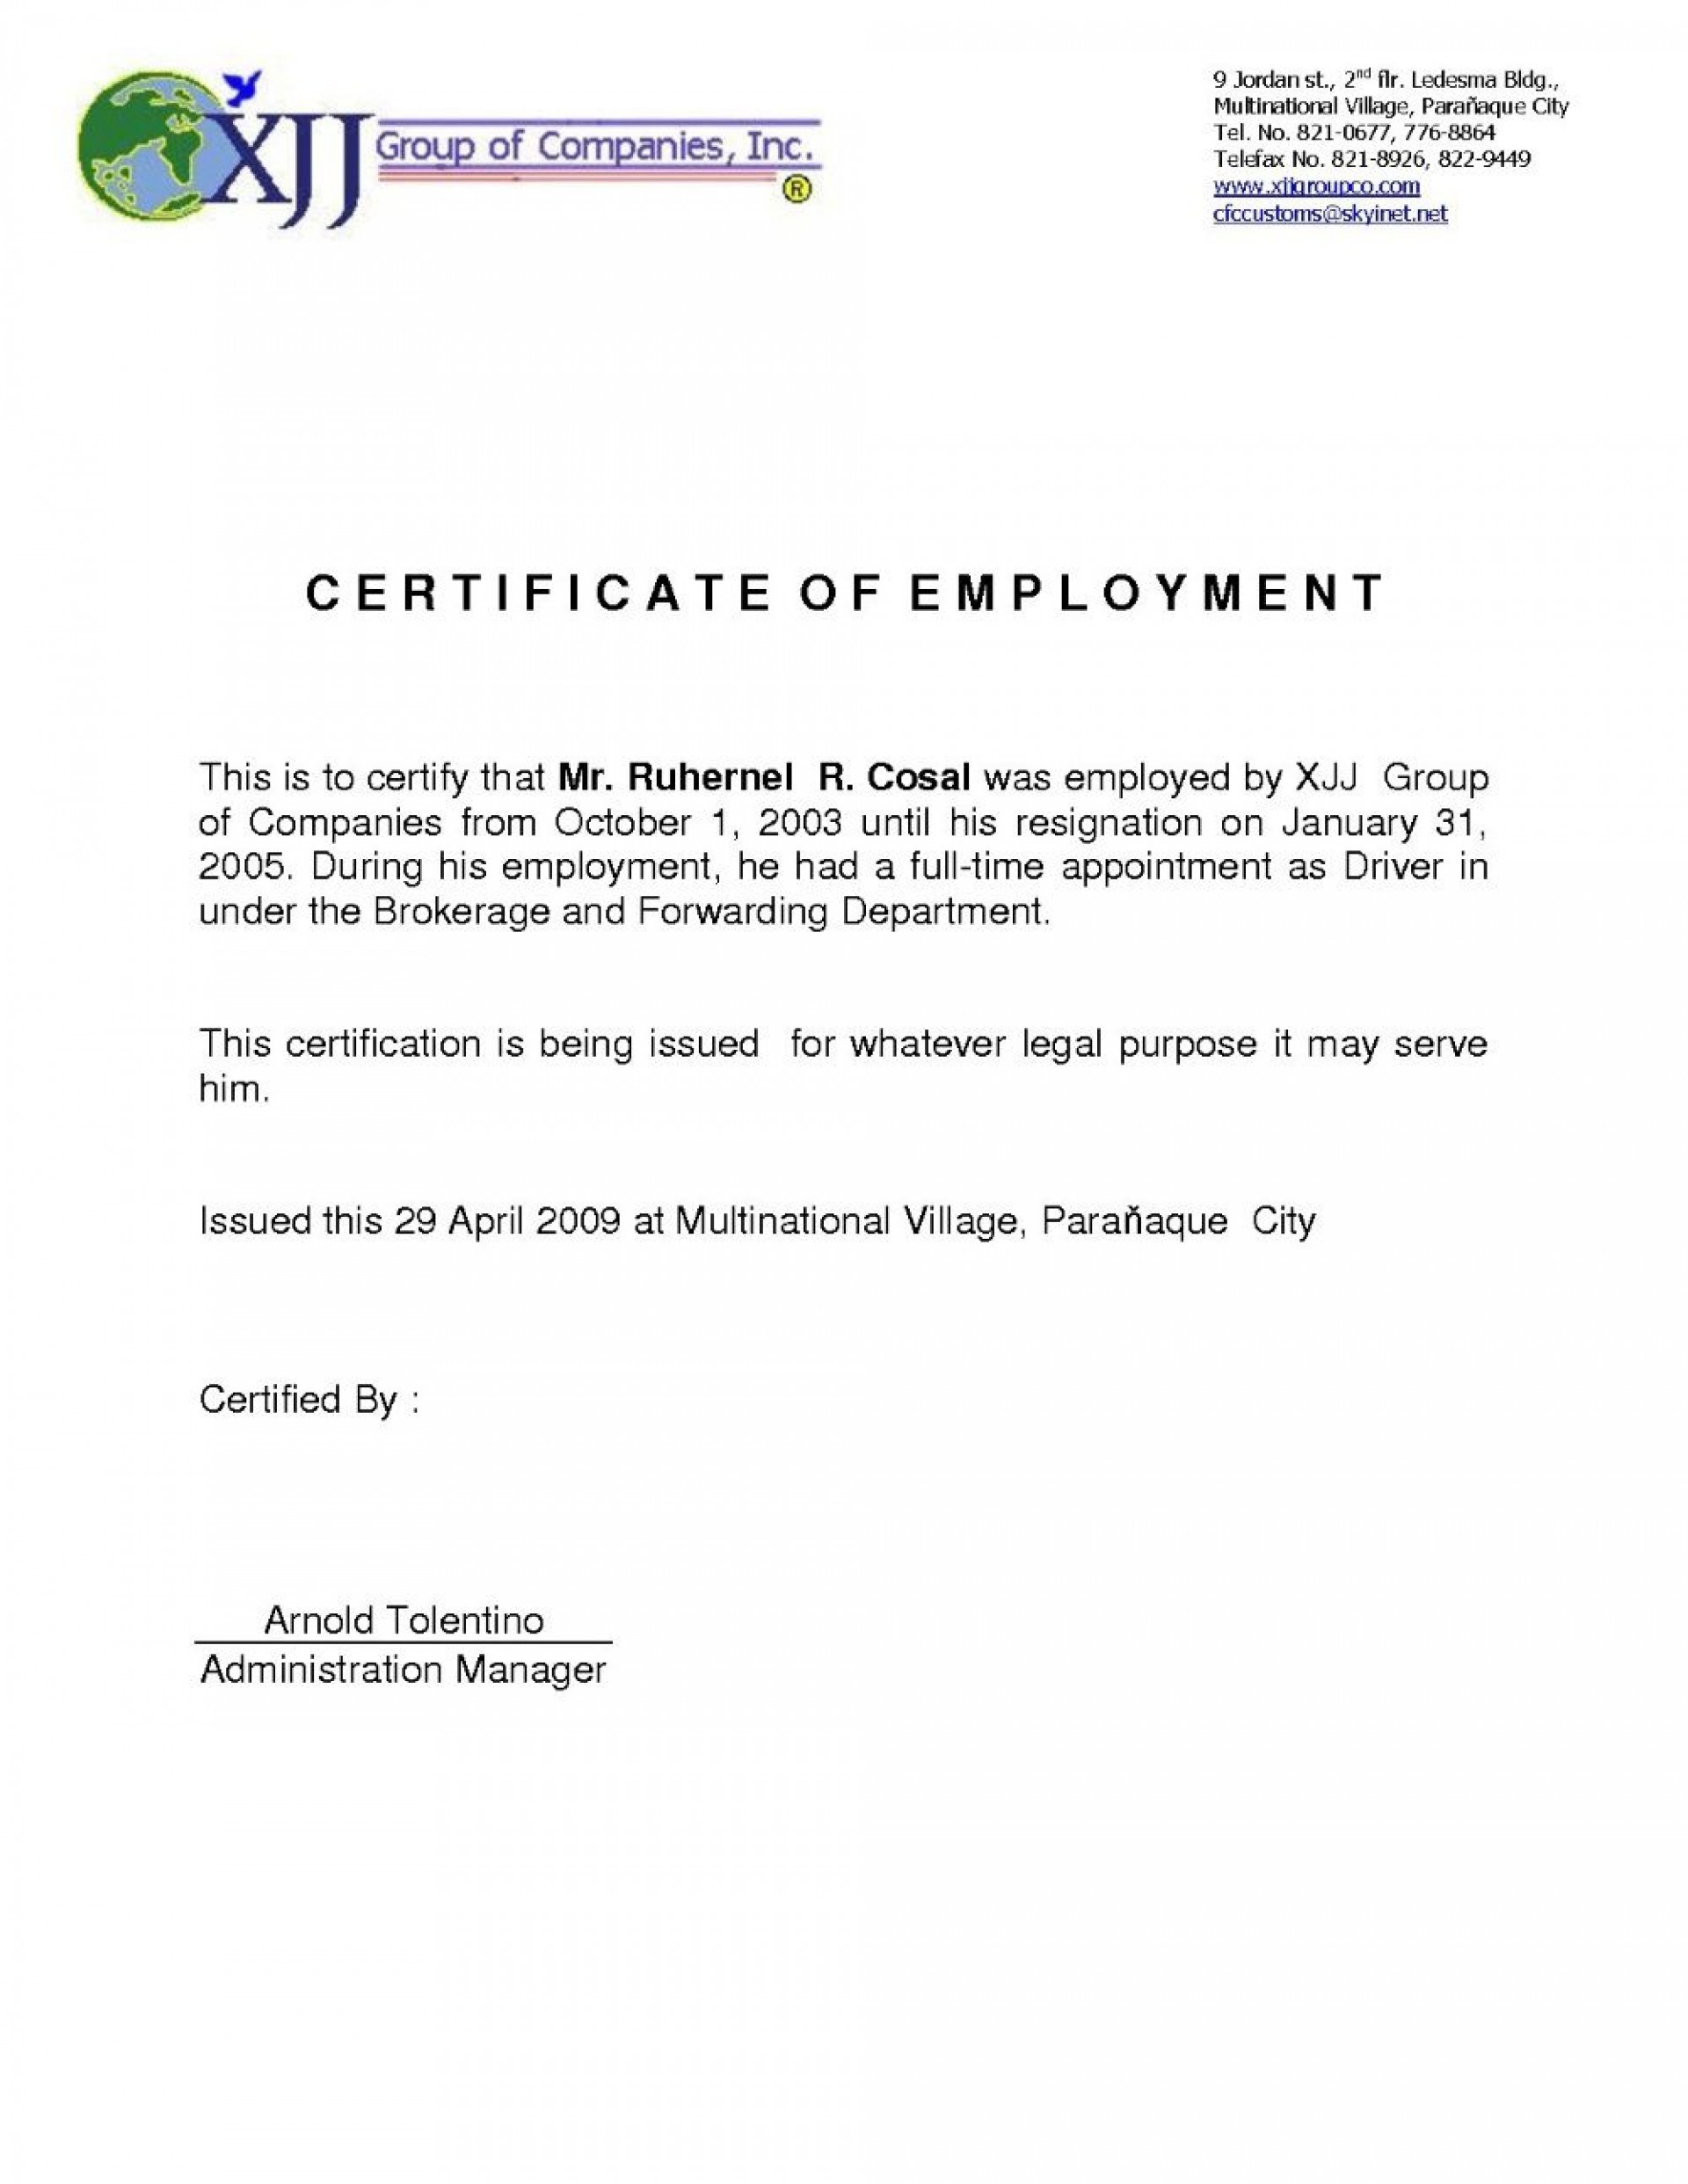 005 Incredible Certificate Of Employment Template Highest Clarity  Nz Sample Word Format Free1920